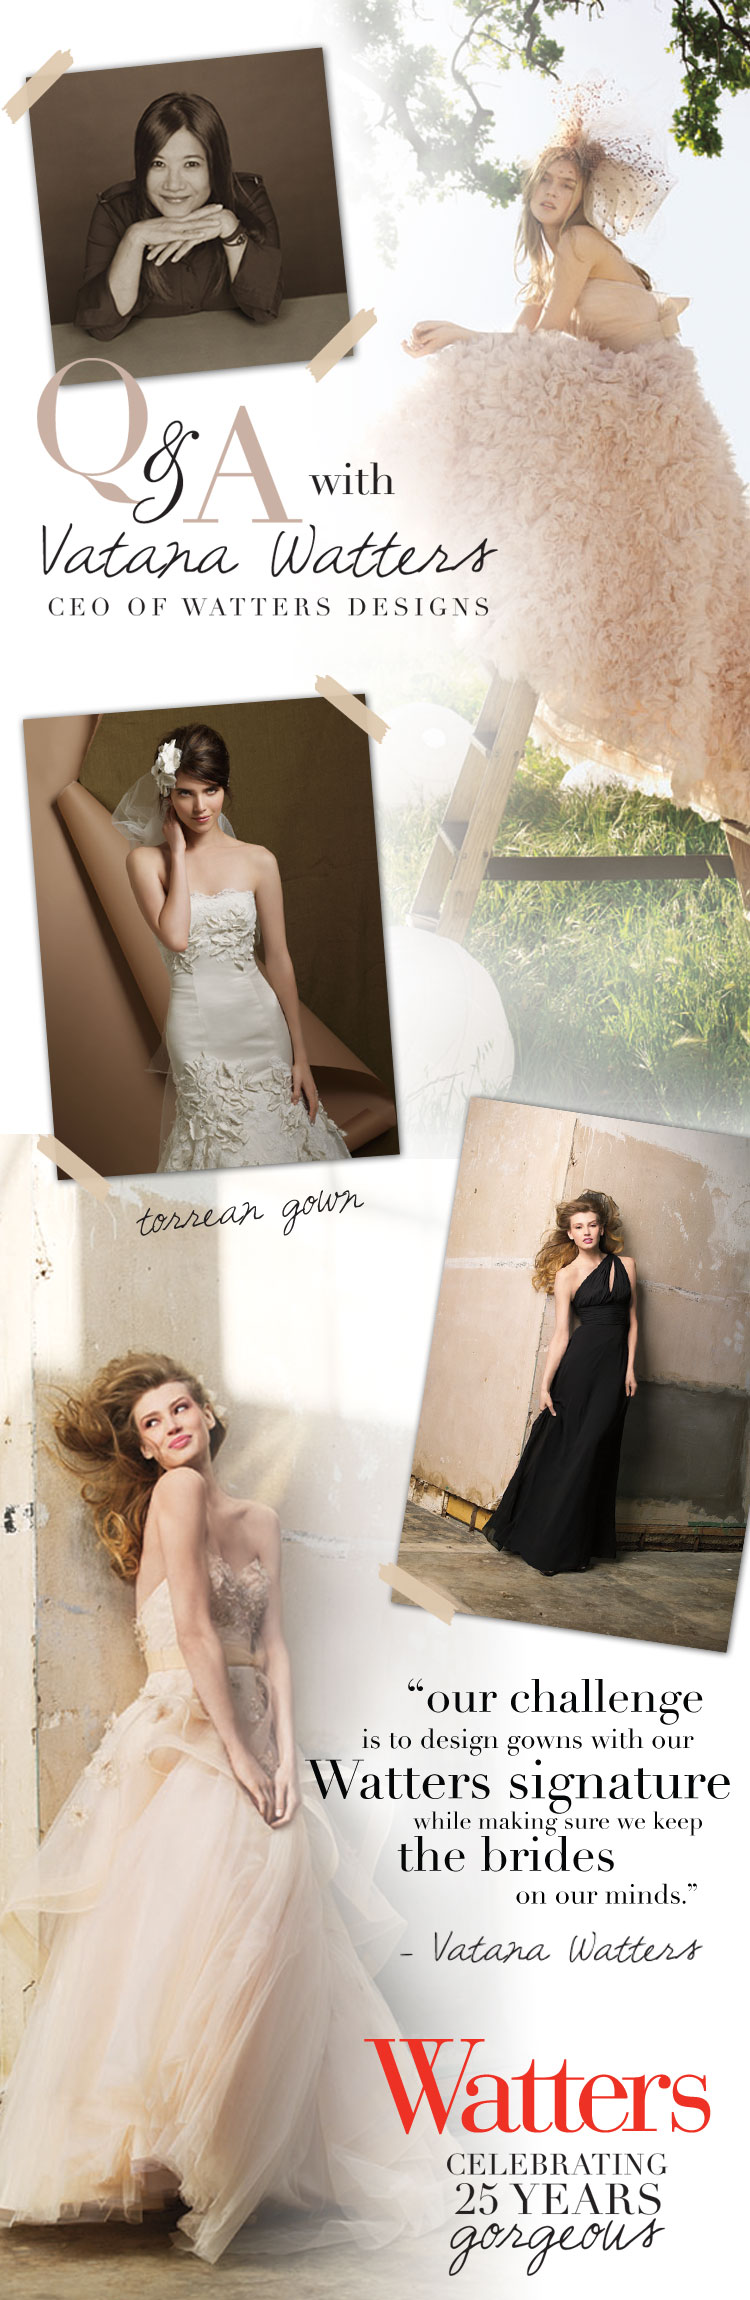 Watters Bridesmaid and Wedding Gown Options